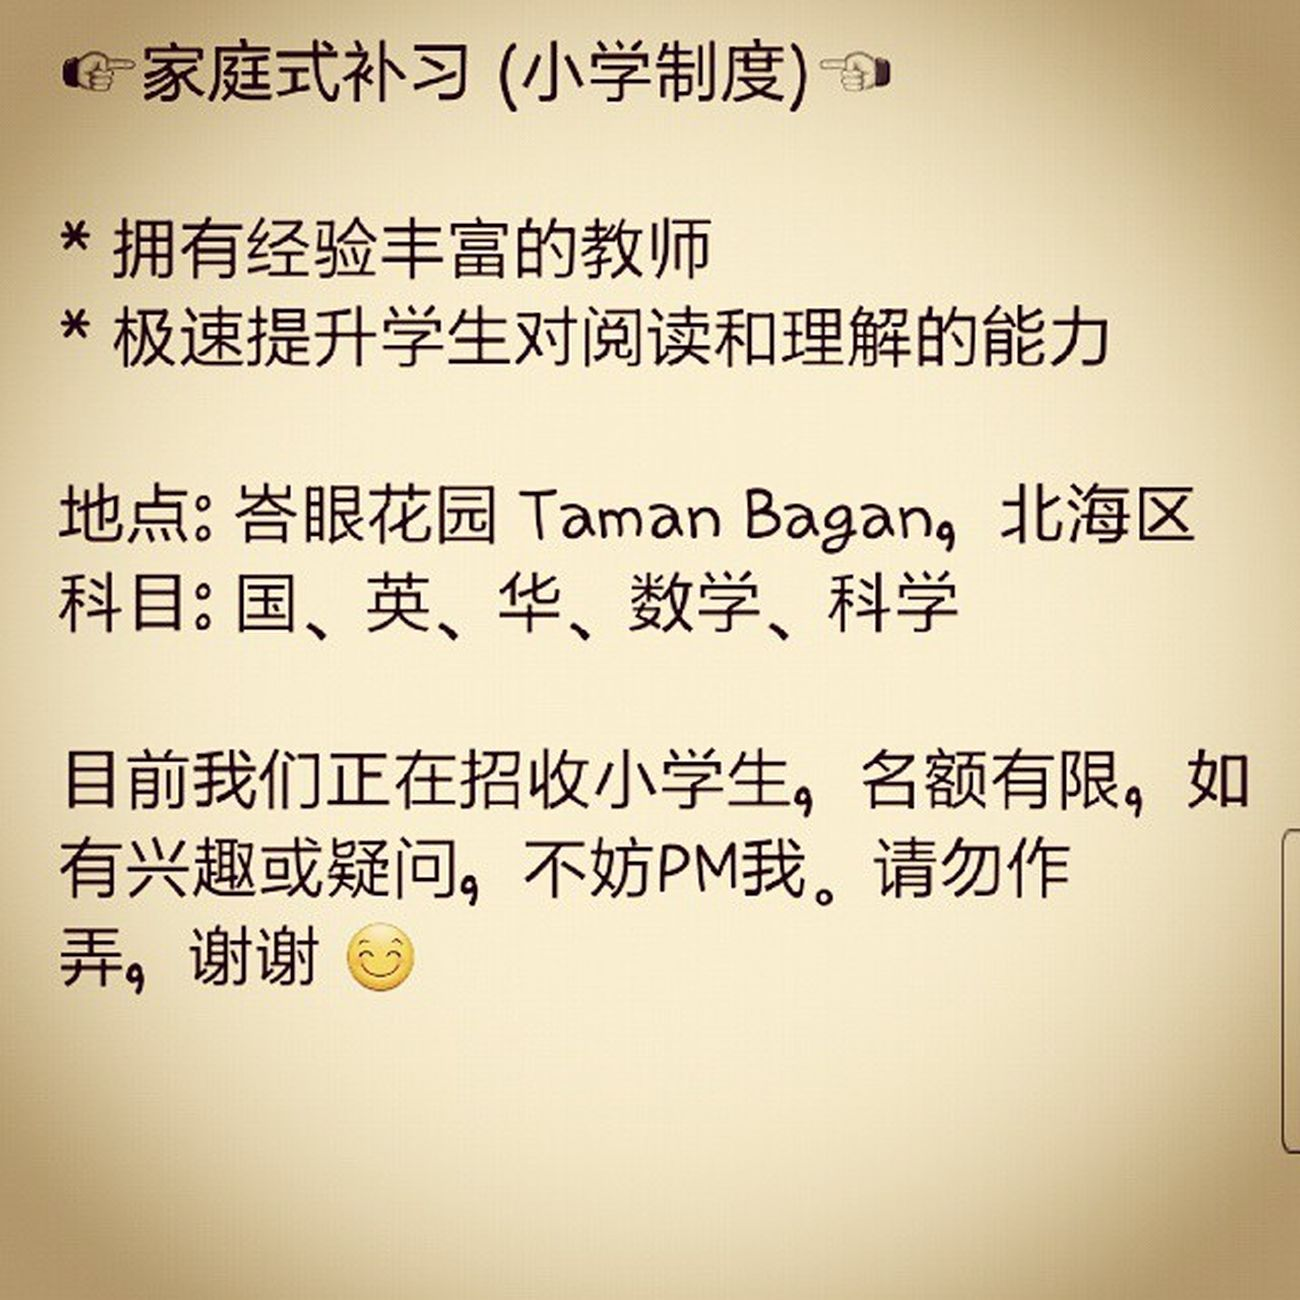 wechat: Jeffreykhooboochean Facebook: Jeffrey Khoo (Jeffreykhoo98@hotmail.com) Thankss~ Tuition Primaryschool Tamanbagan Butterworth student teacher